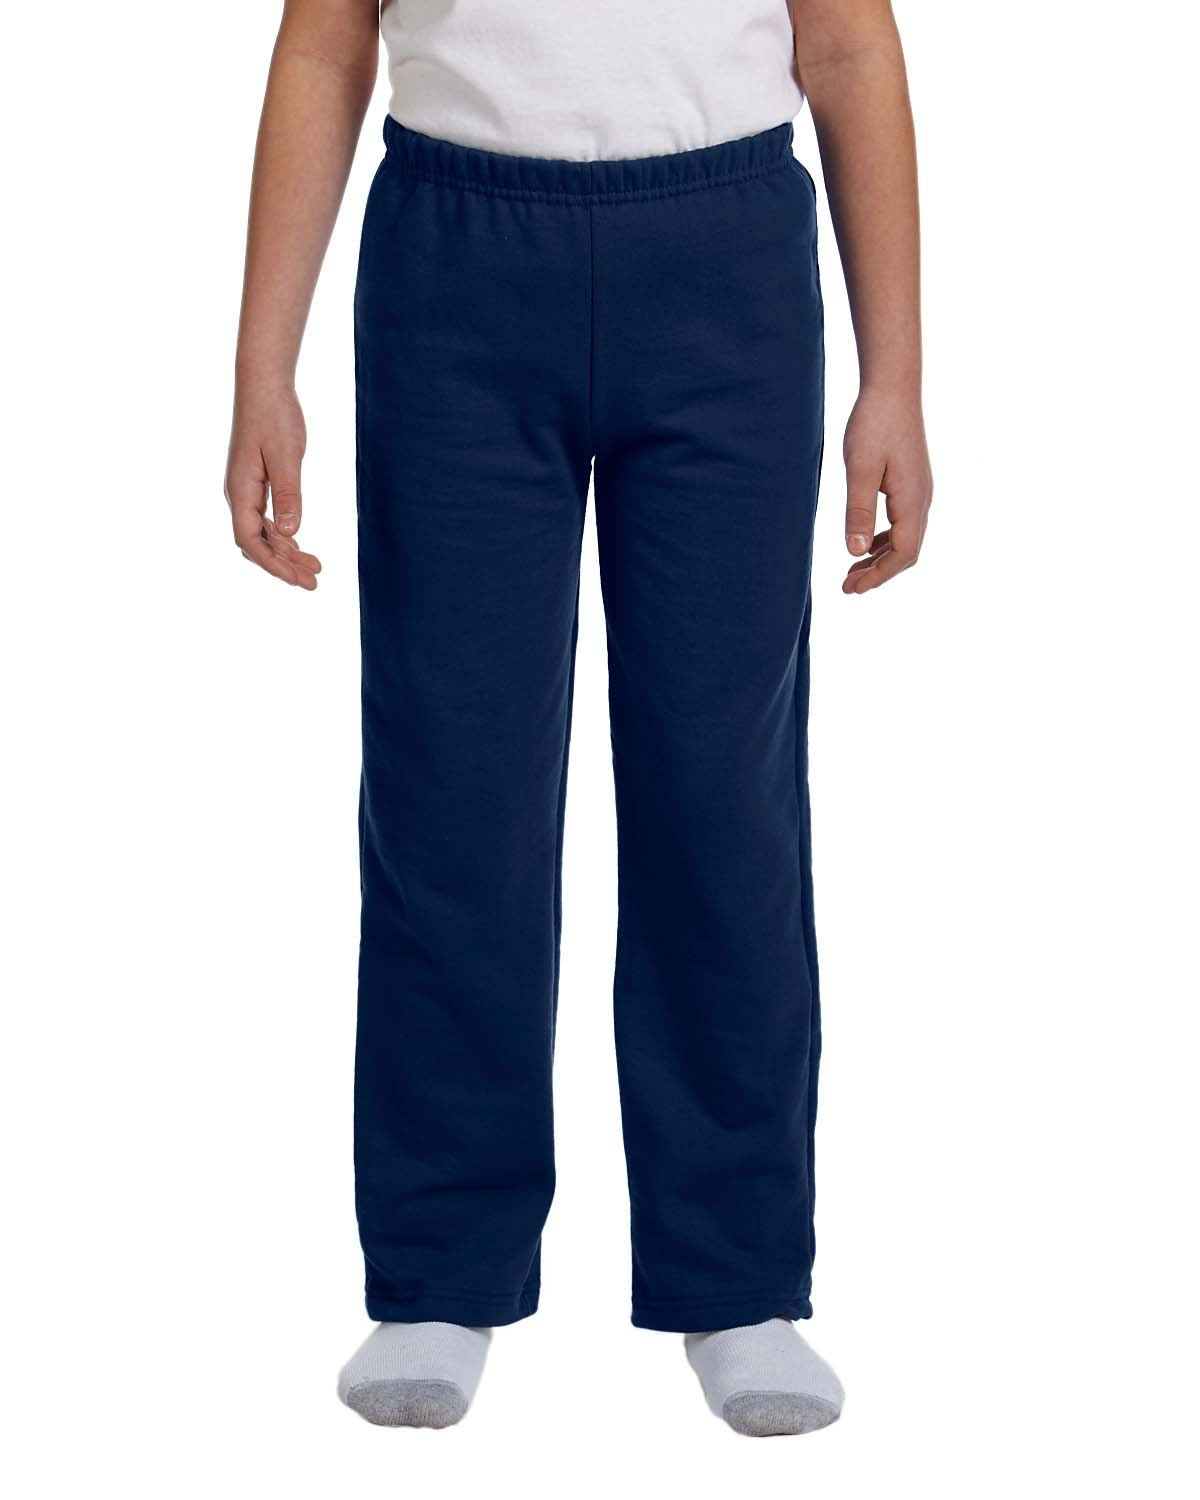 Youth Heavy Blend™ 8 oz. 50/50 Open-Bottom Sweatpants